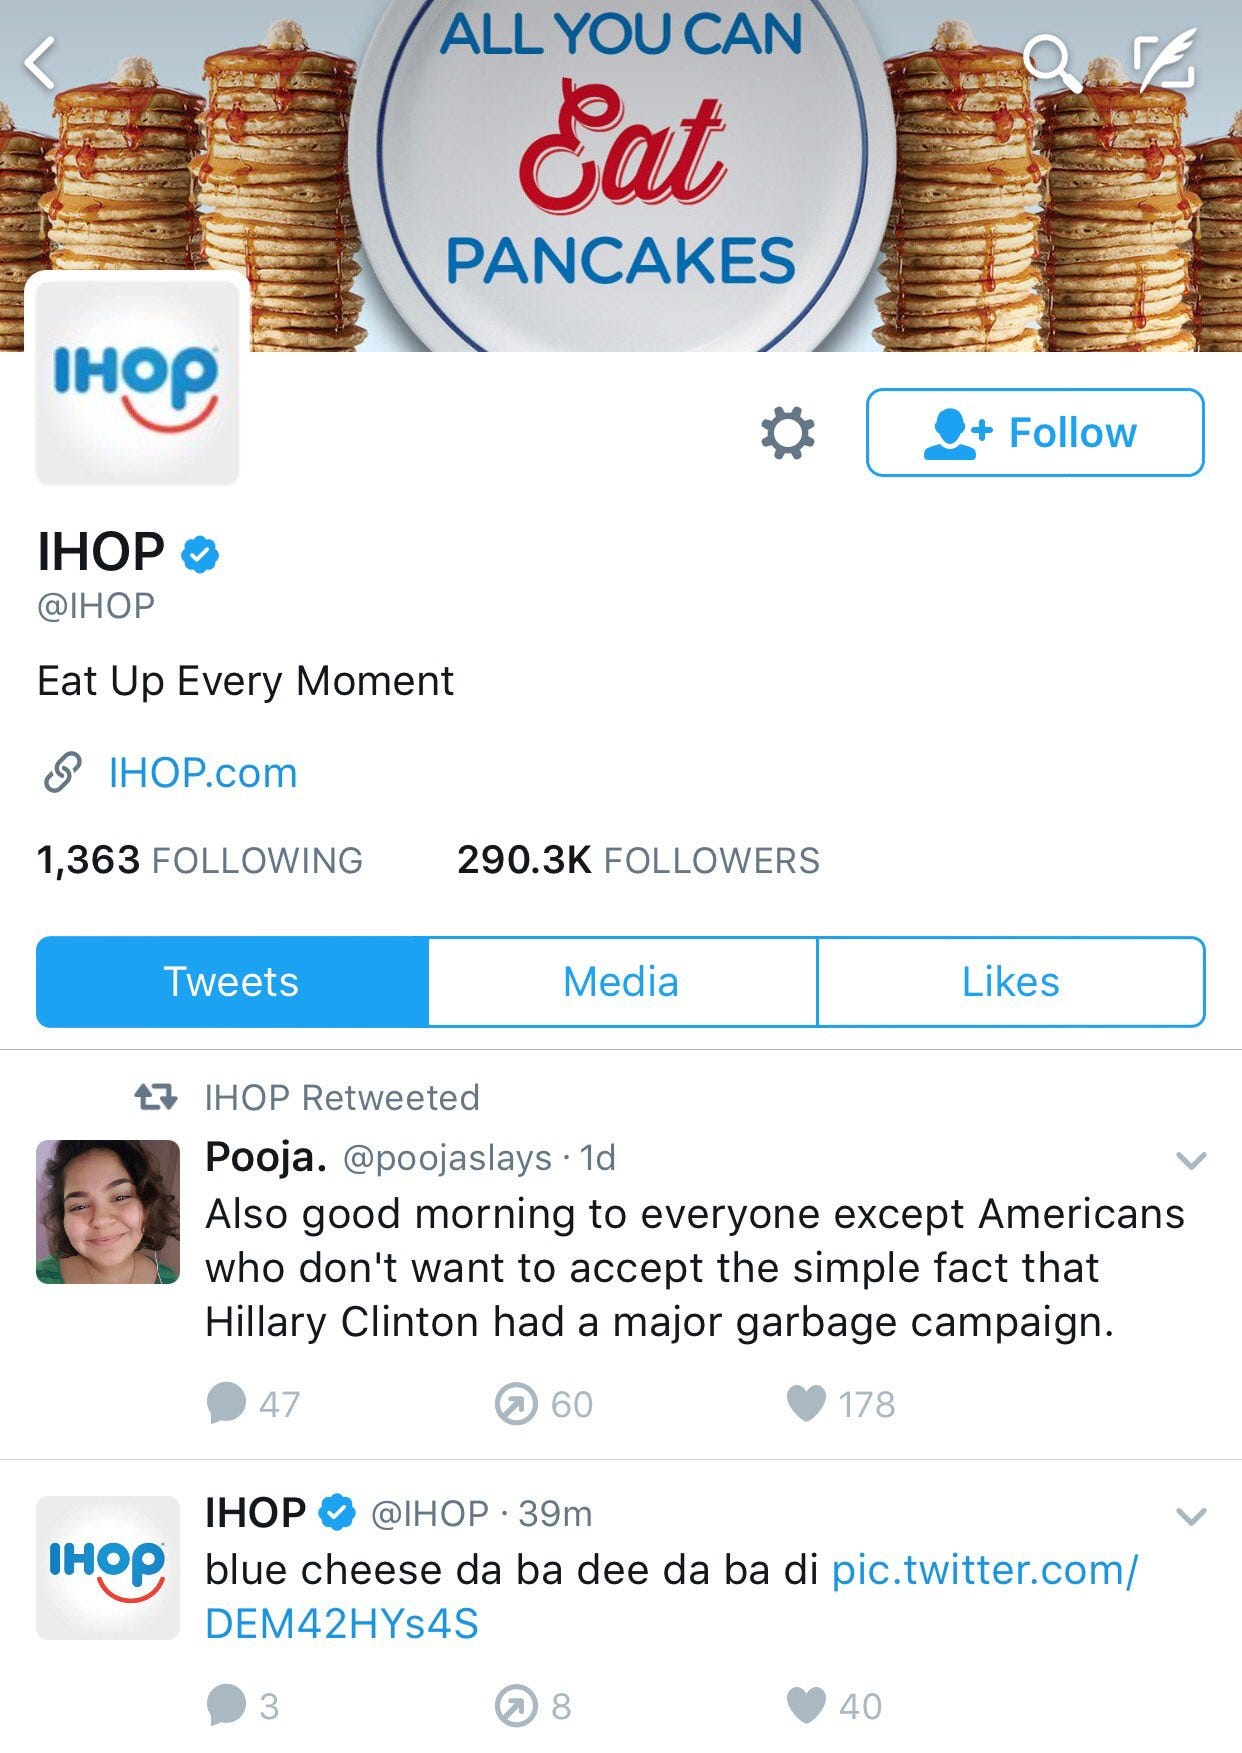 IHOP With The Political Hot Take From The Clouds!! - Barstool Sports